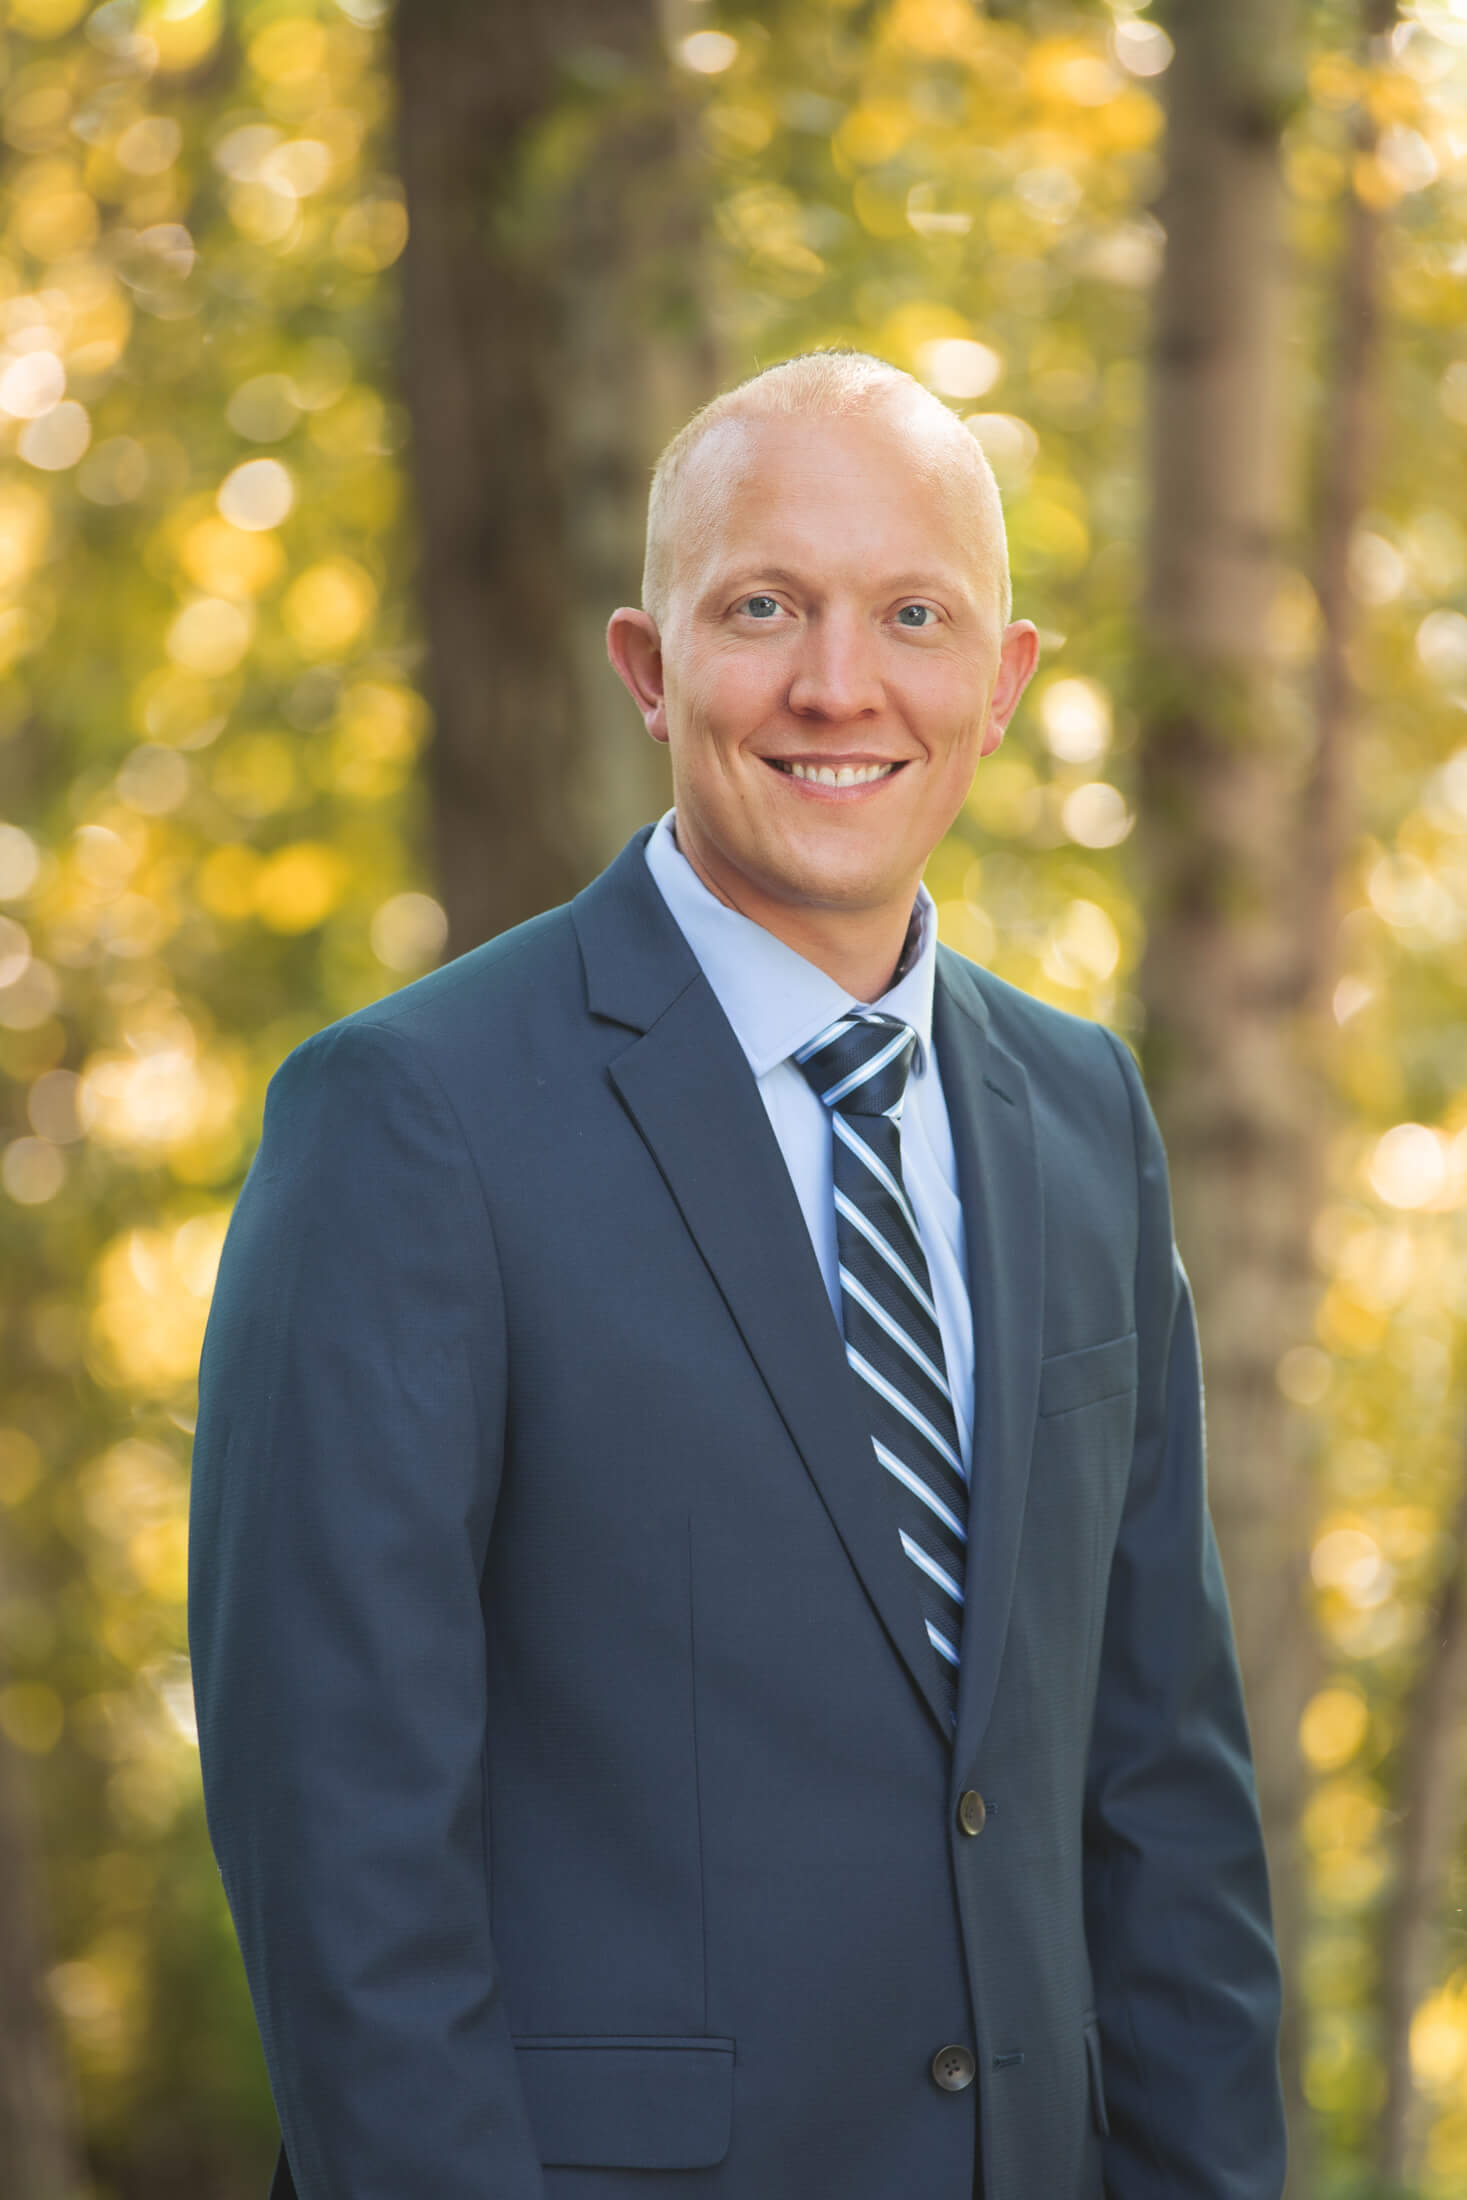 Dr. Brian Hutchings, DDS